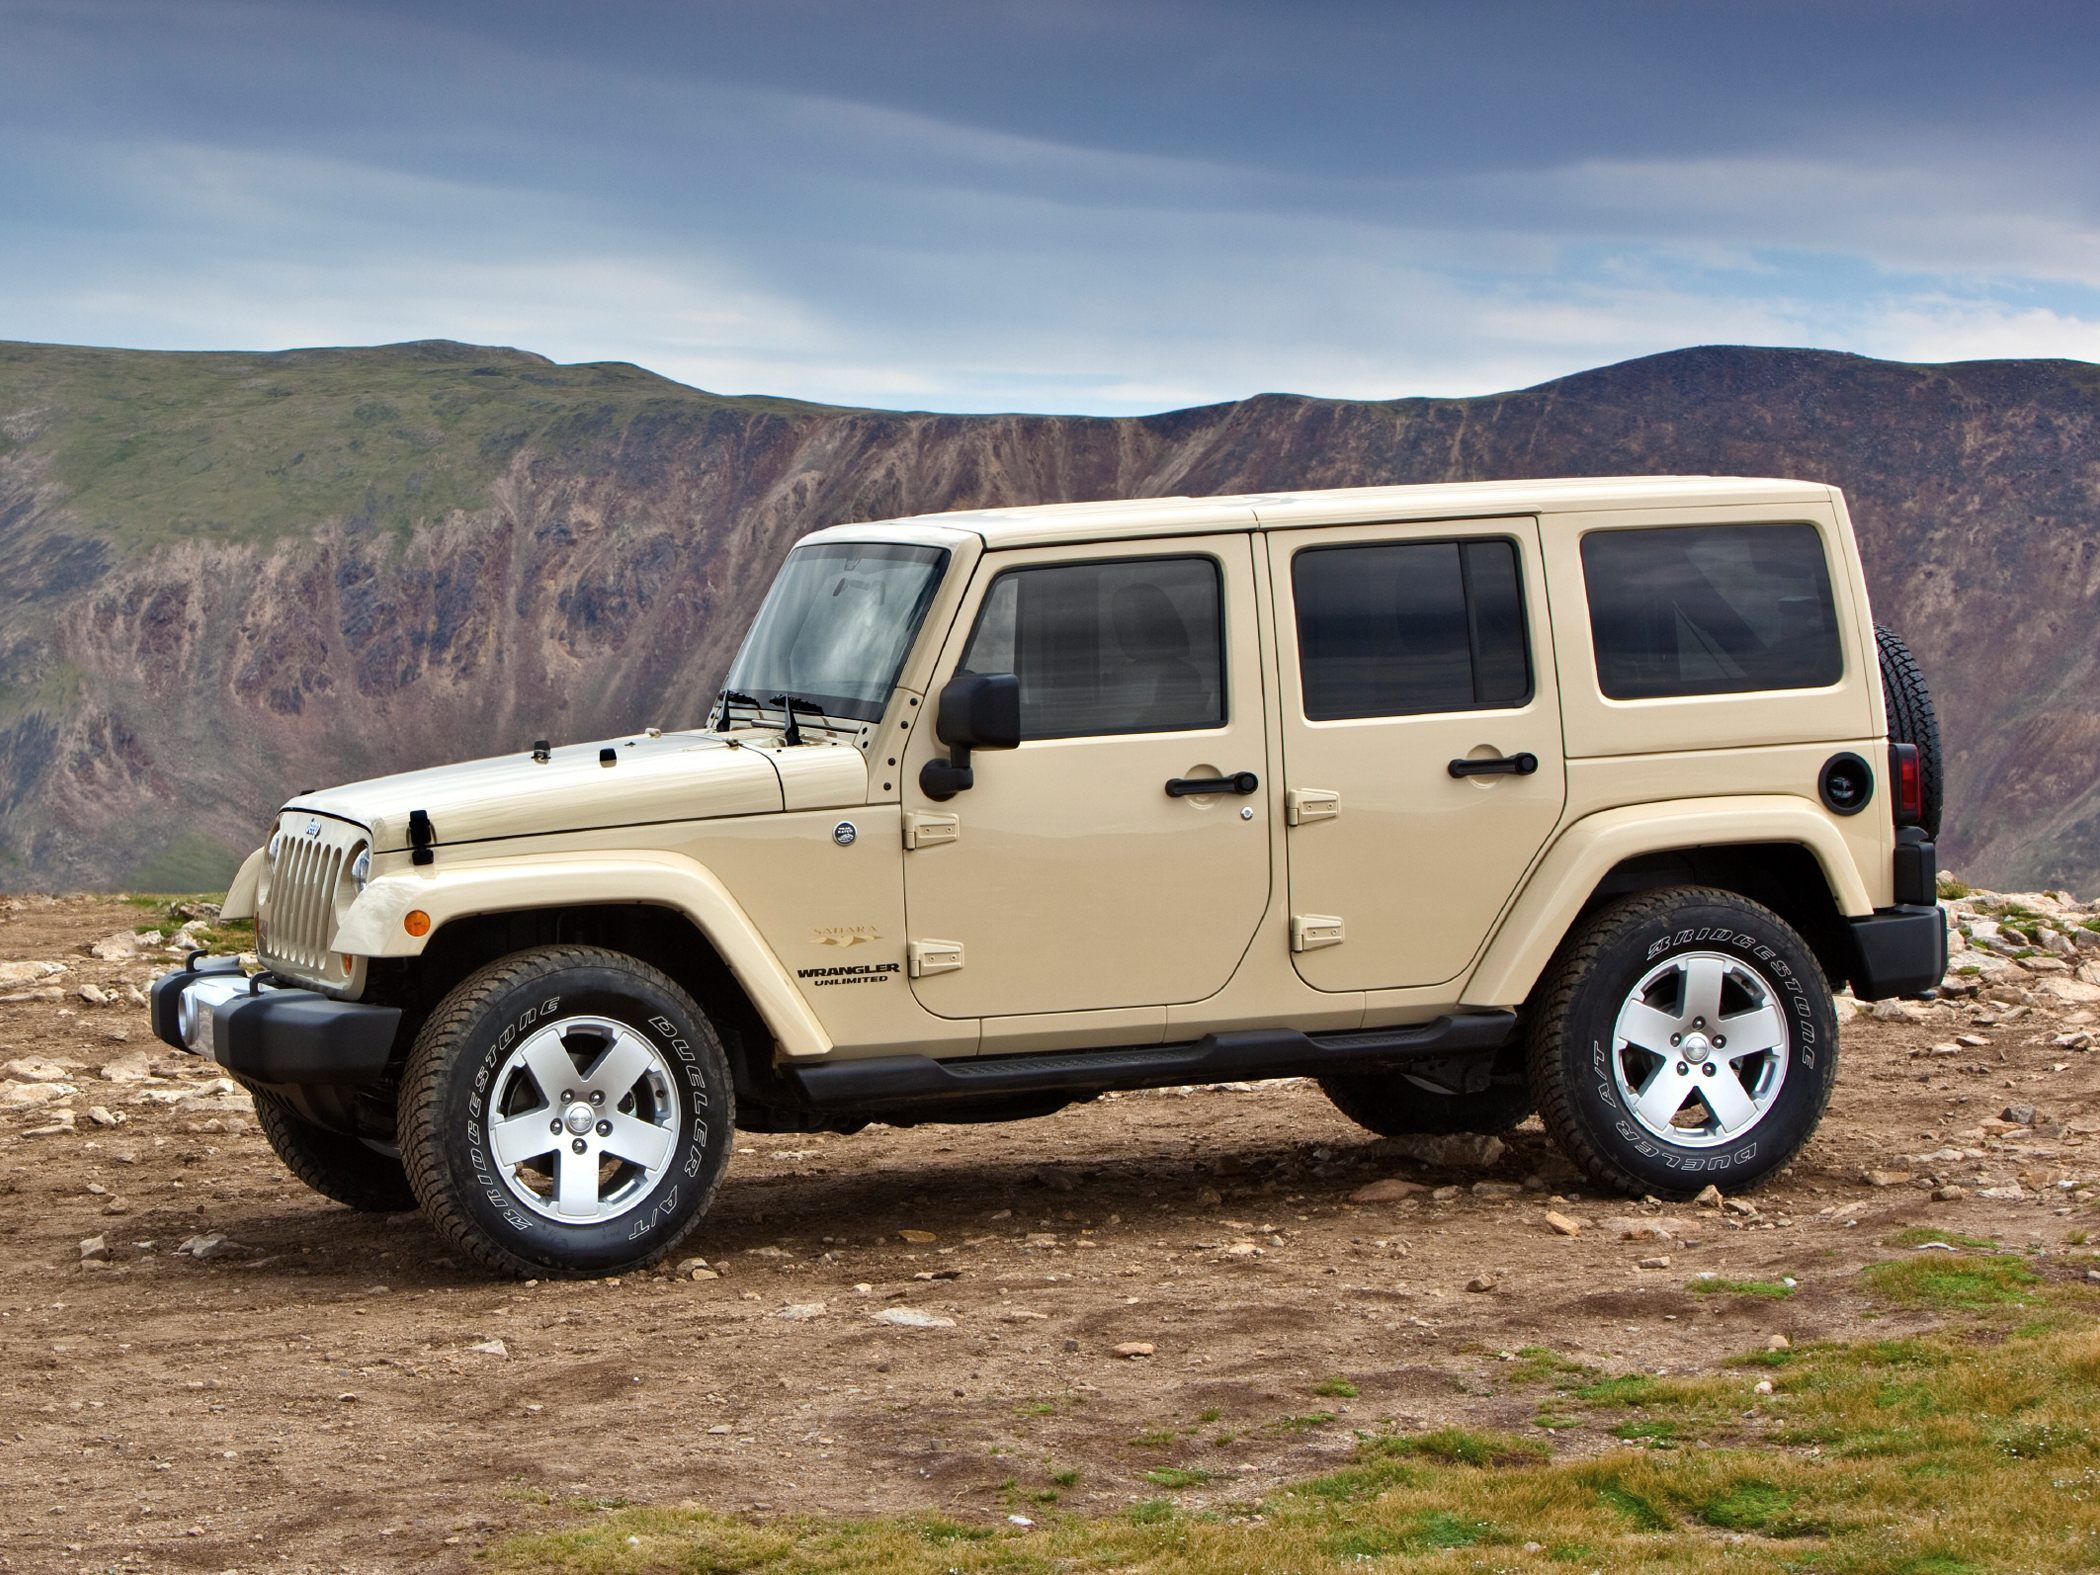 White Jeep Wrangler Unlimited Kind of wish I had this now